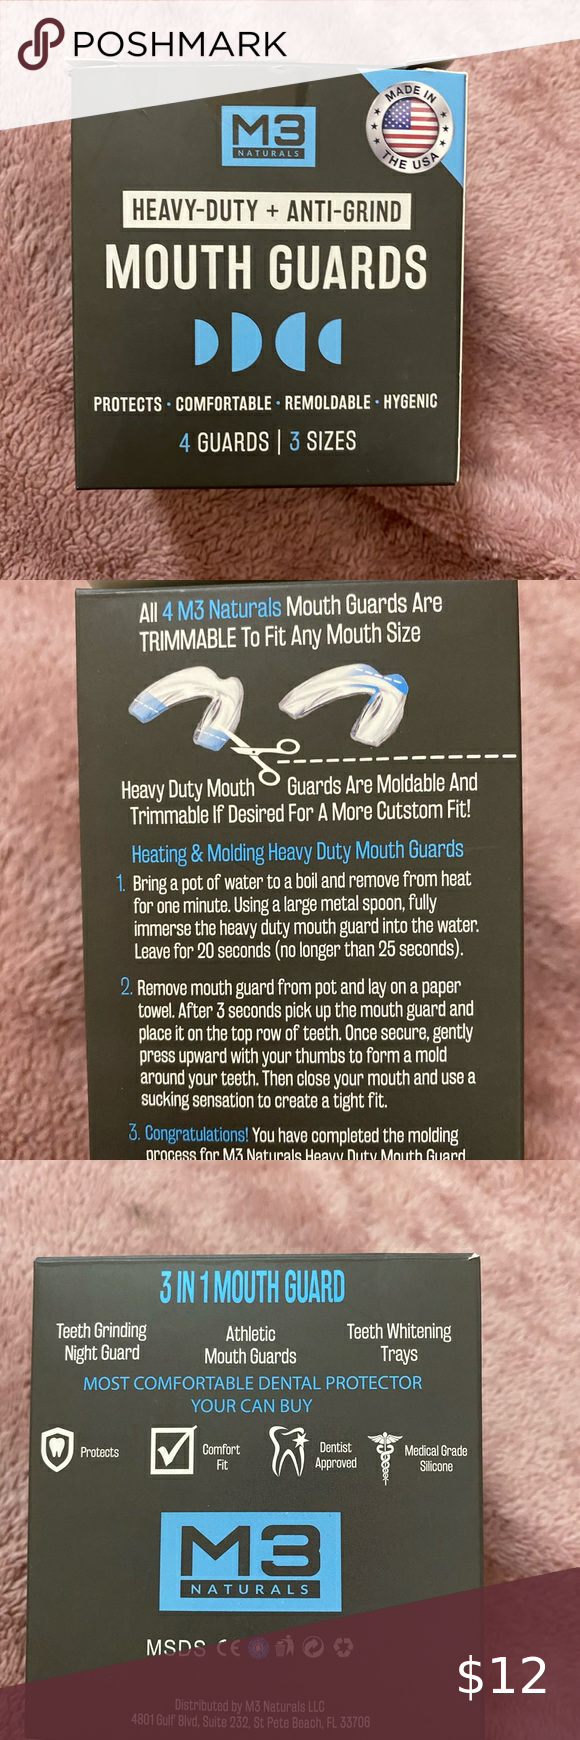 13+ Mouth guards